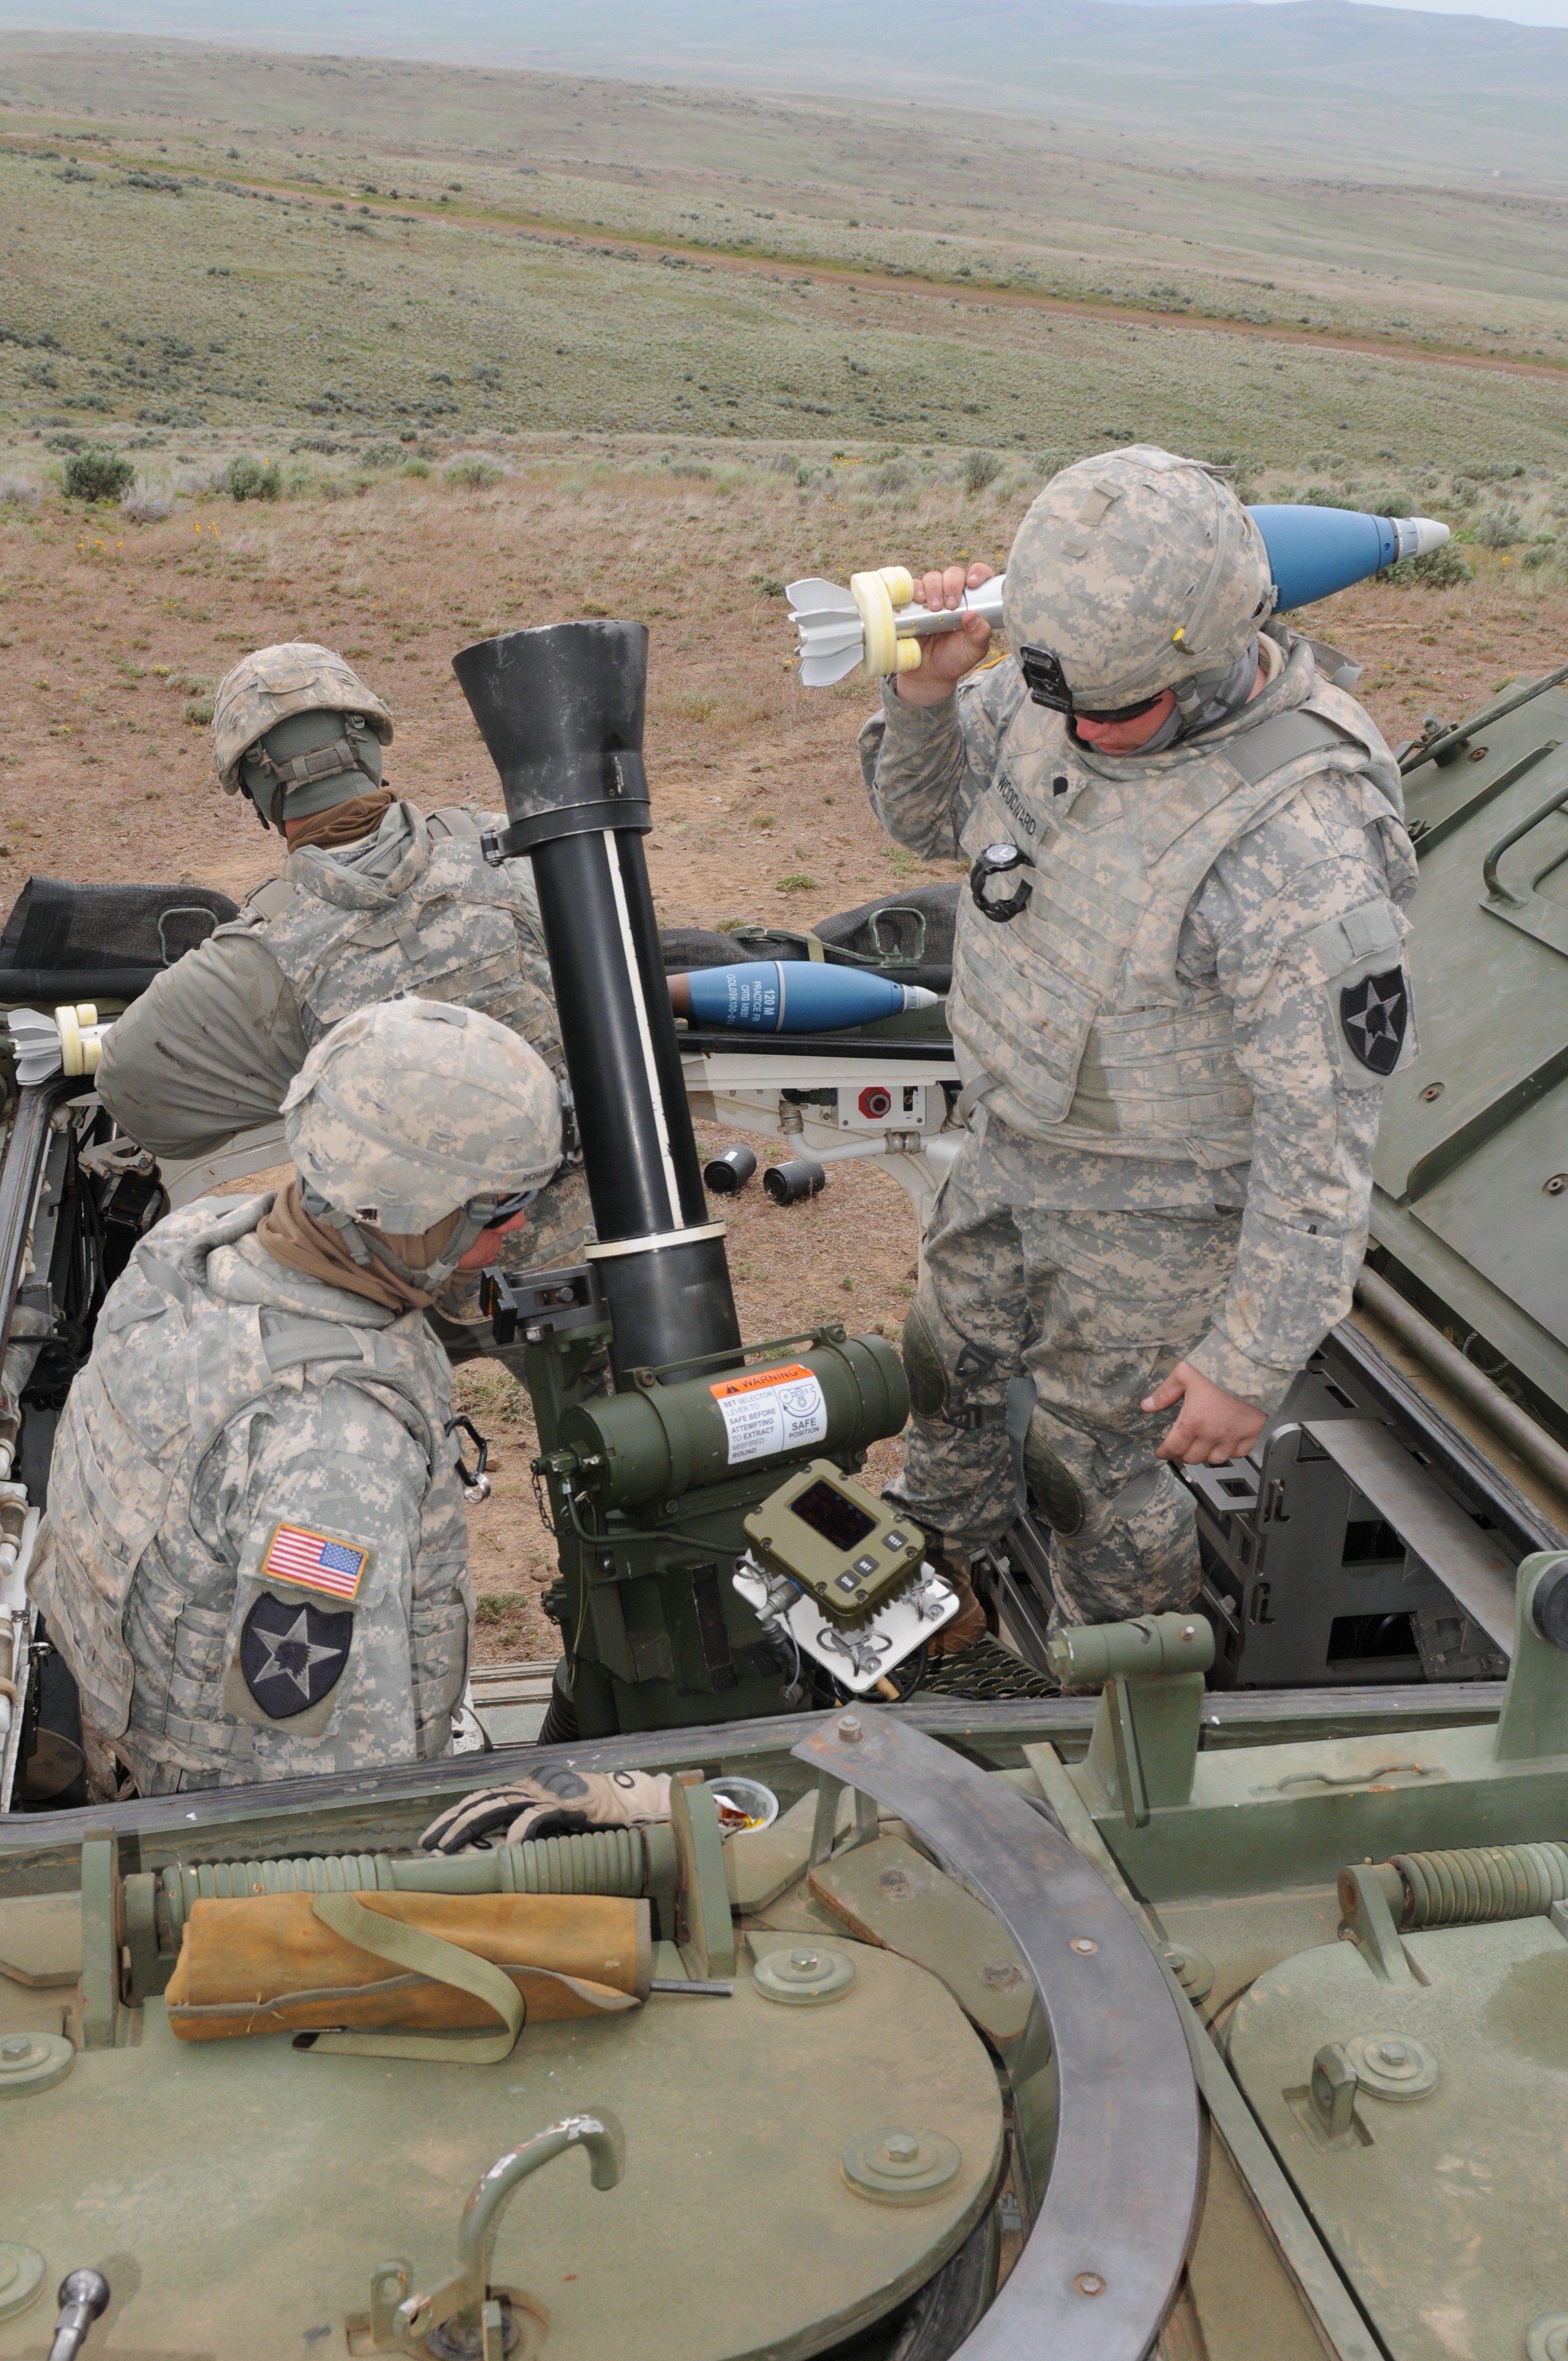 U S Army Heavy Mortar Platoon : Mortar platoon soldiers more than just a team article